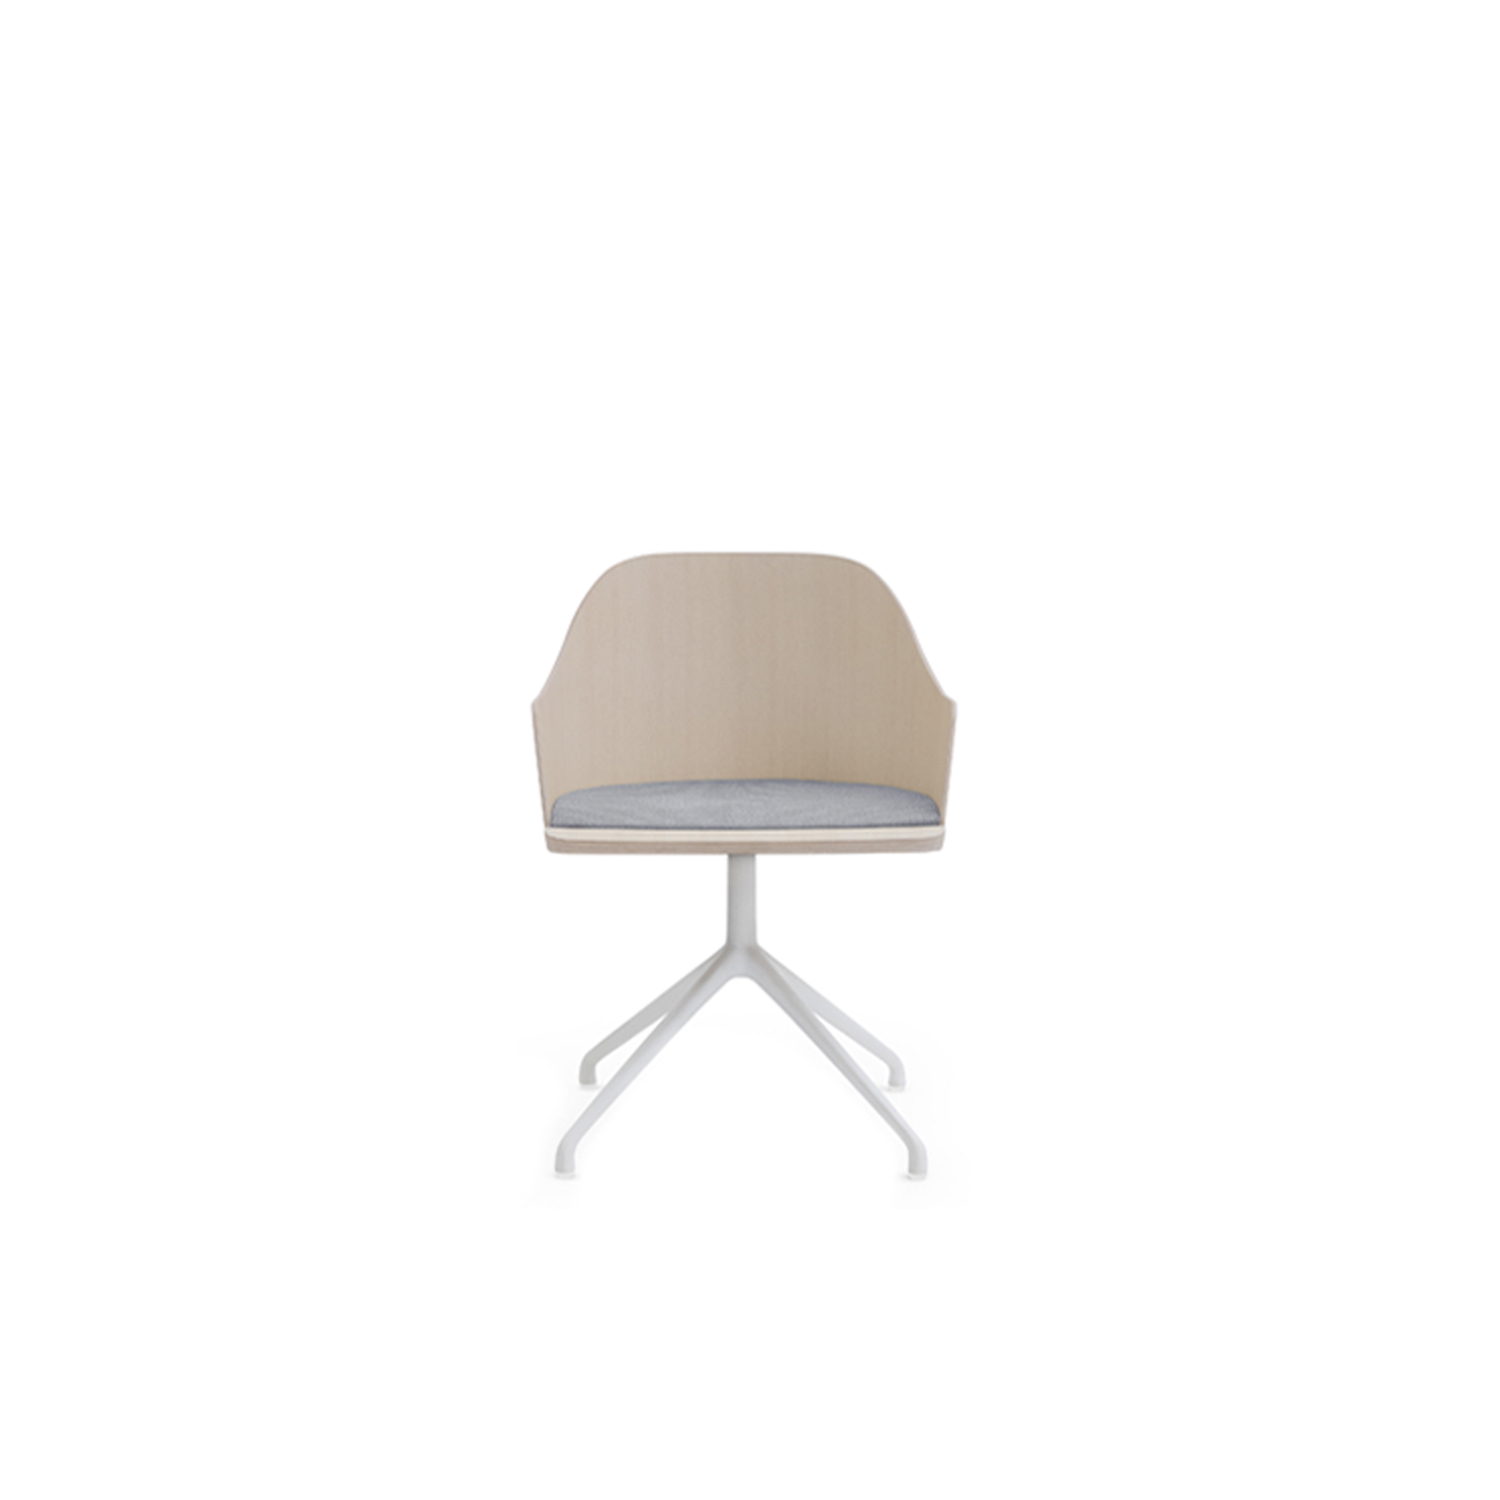 Fitt Swivel Upholstered Armchair - This is the wooden chair as Billiani intends it, direct and timeless. The Valencian designer's intention is for versatility of use and multiple applications, with a striking level of comfort and intriguing proportions. The Fitt Classic collection starts with the light and refined ash chair with plywood shell. Alongside this, are armchair versions with a choice of lacquered metal frames: on four legs, sled, and swivel base. All models are available with wooden or upholstered seat.  | Matter of Stuff